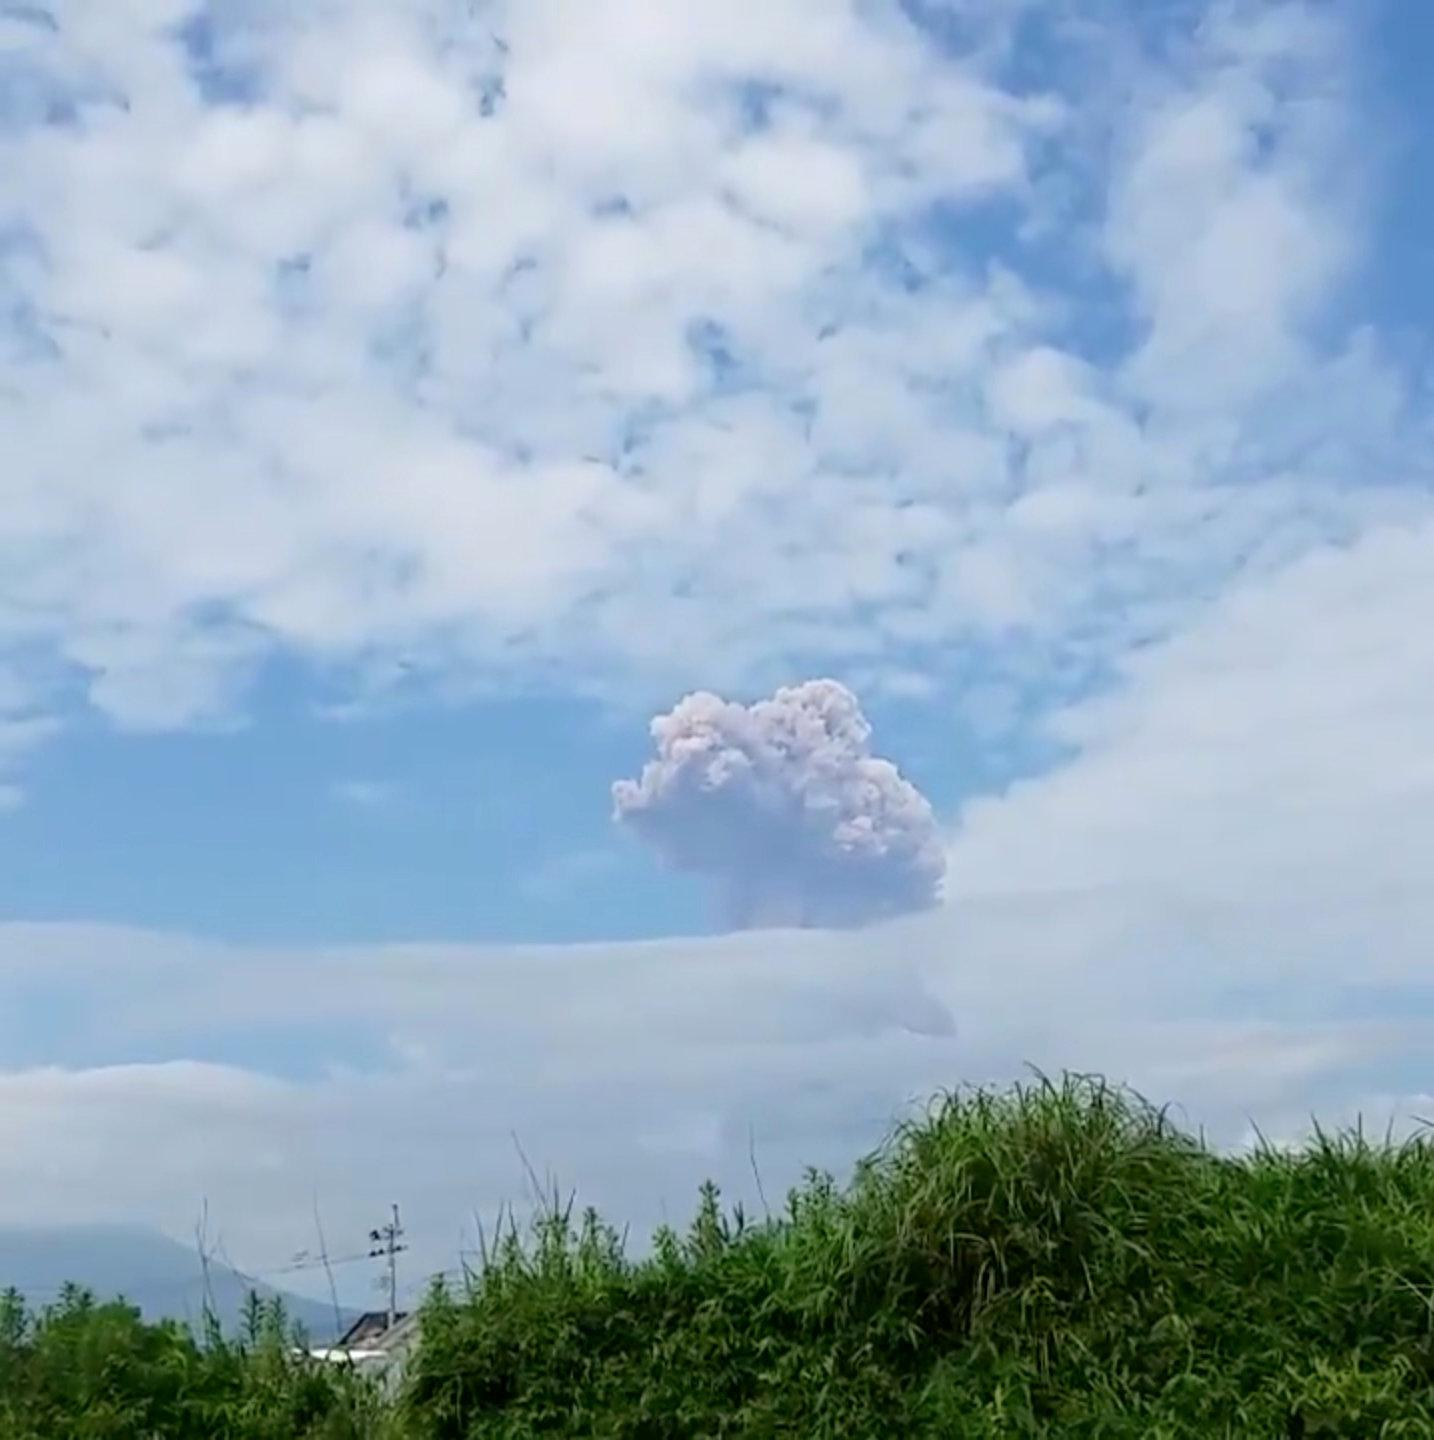 Smoke rises from a volcano in Shinmoedake, Japan, June 22, 2018 in this picture obtained from social media.  Yamayuu/via